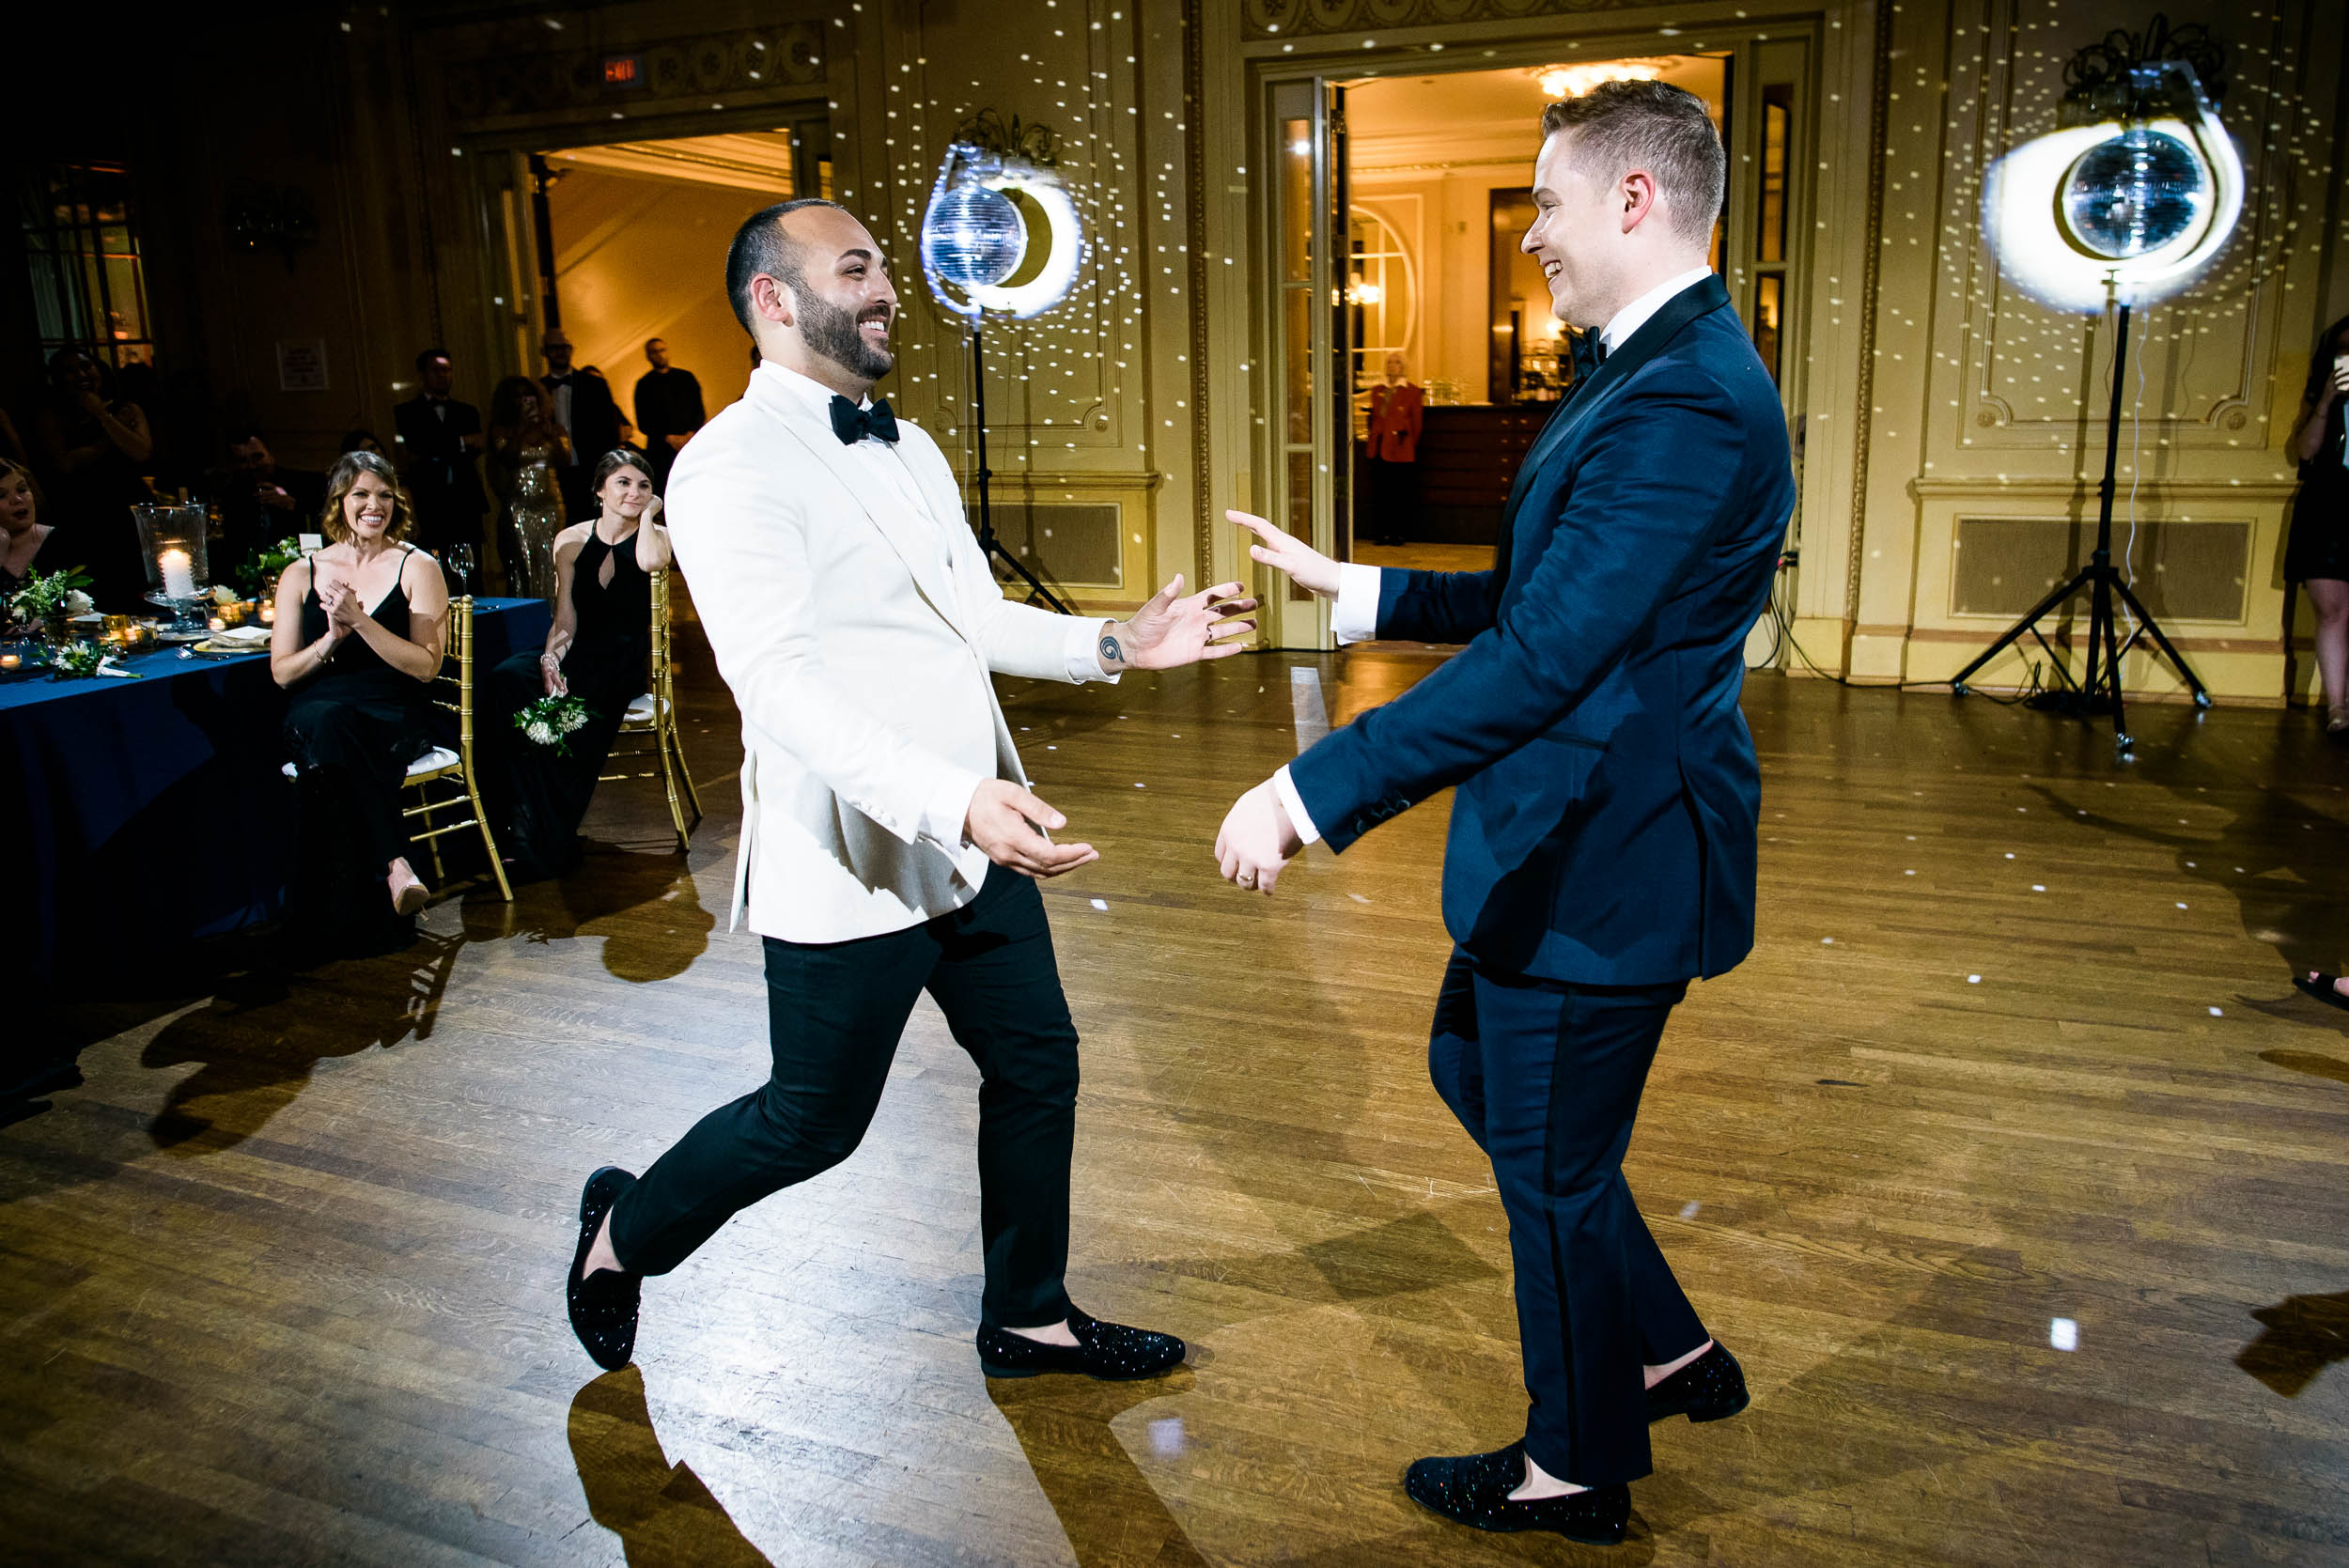 Grooms dancing at wedding reception for luxurious fall wedding at the Chicago Symphony Center captured by J. Brown Photography. See more wedding ideas at jbrownphotography.com!